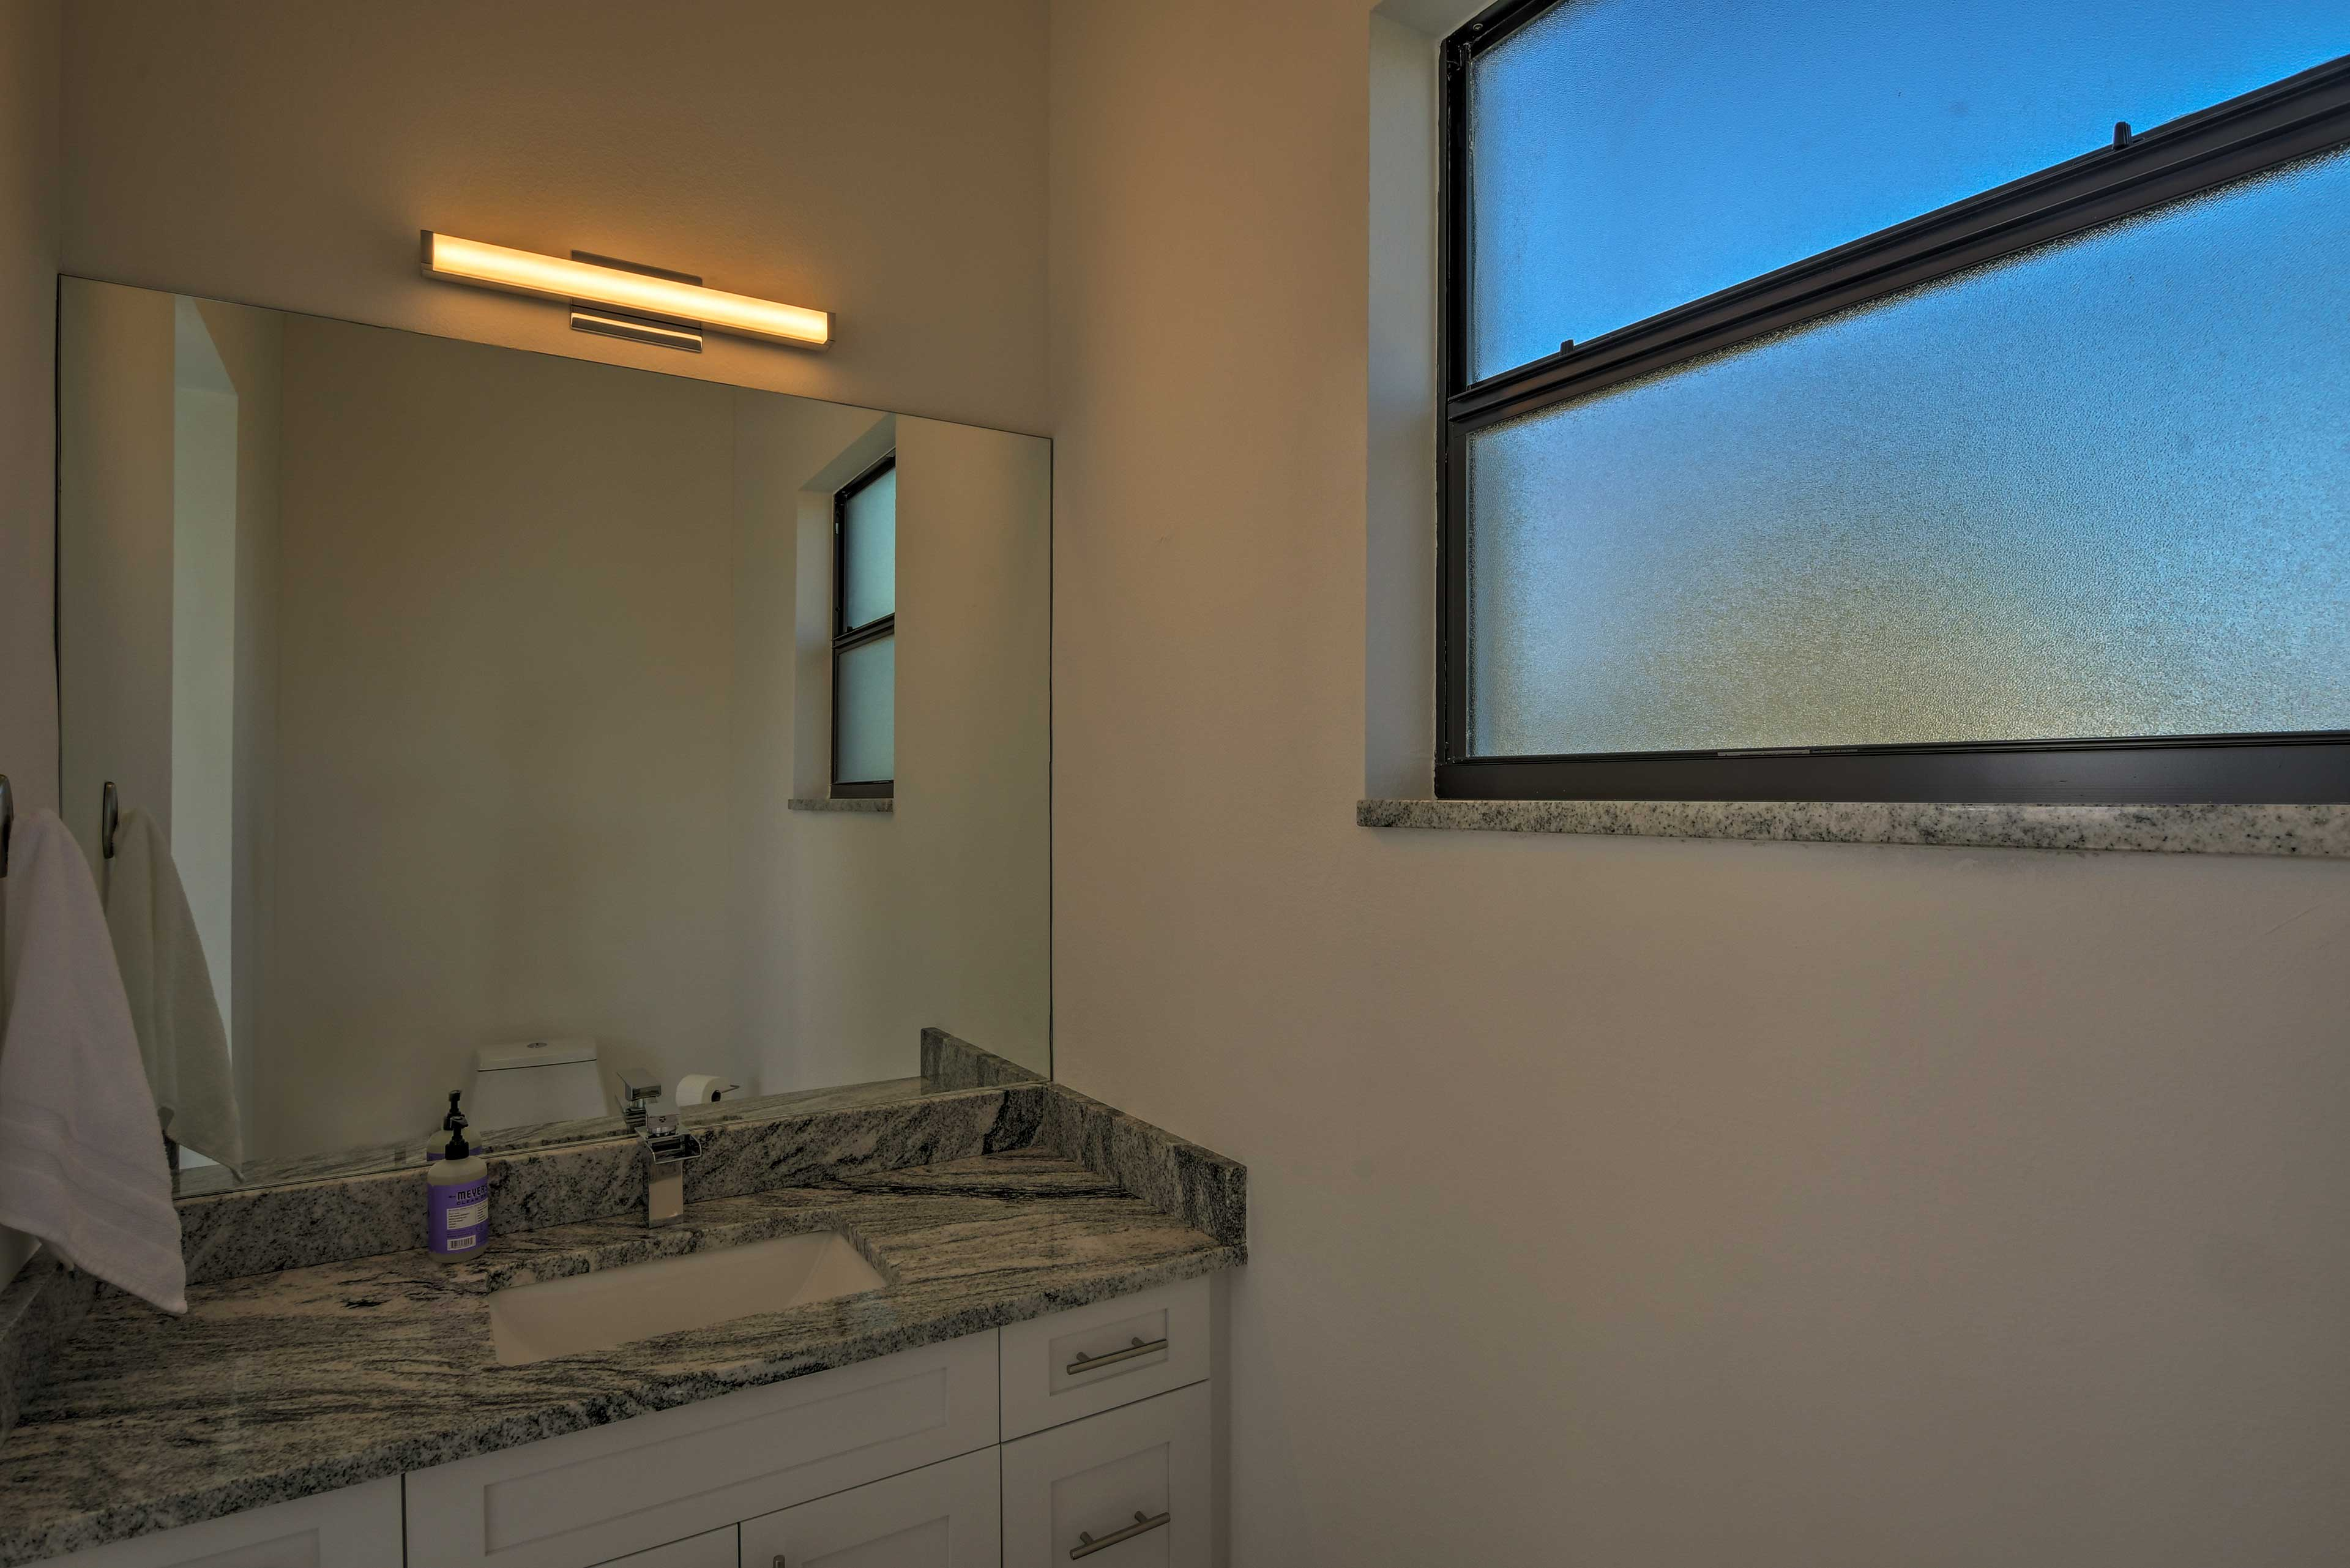 One bathroom is located by the pool area.